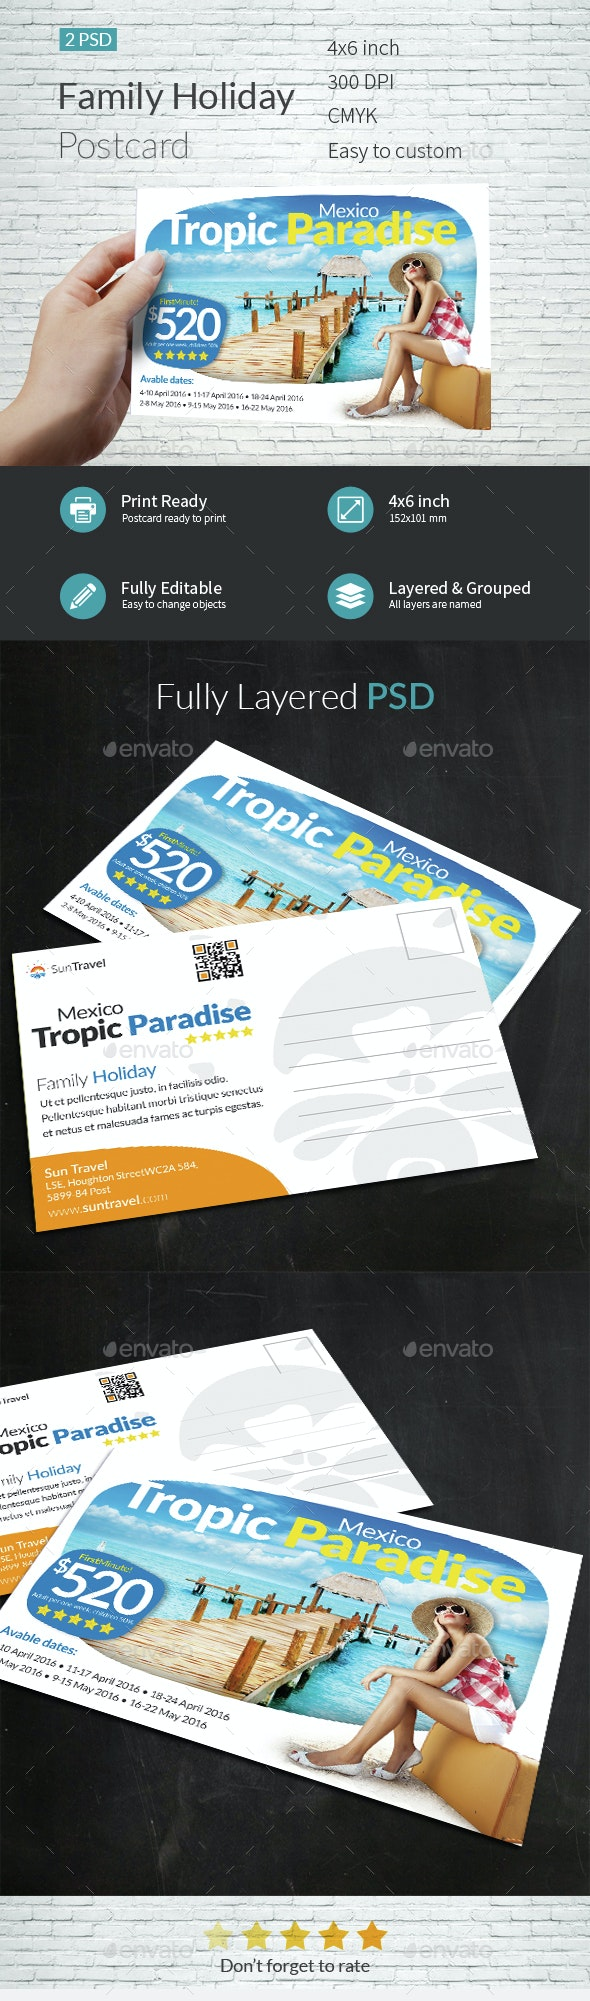 Family Holiday Postcard Template - Cards & Invites Print Templates